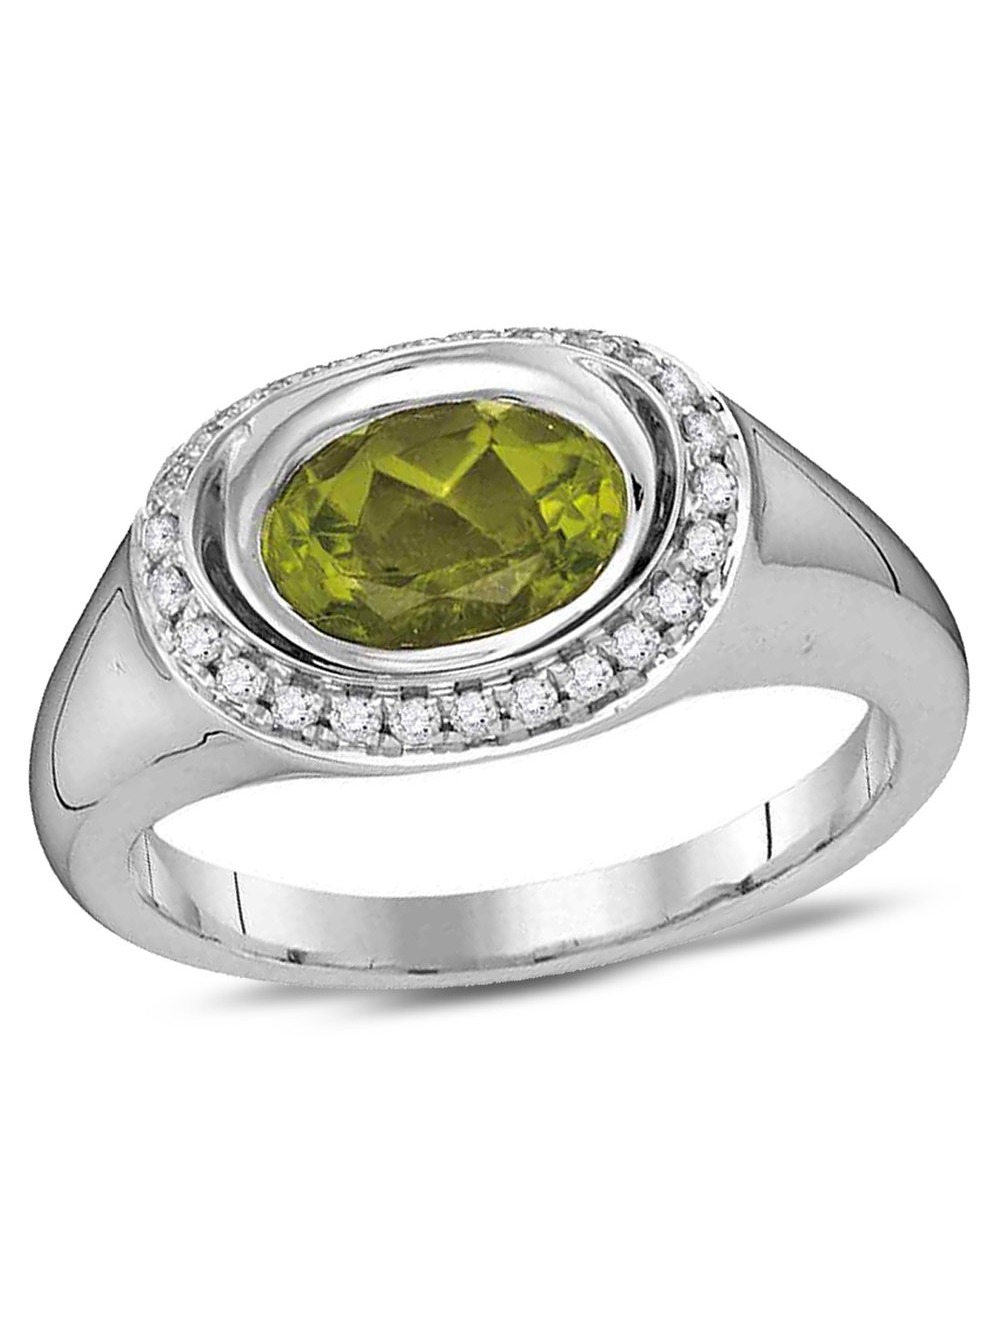 Natural Peridot Ring 1.30 Carat (ctw) in 14K White Gold with Diamonds 1 6 Carat (ctw G-H, SI2) by Gem And Harmony